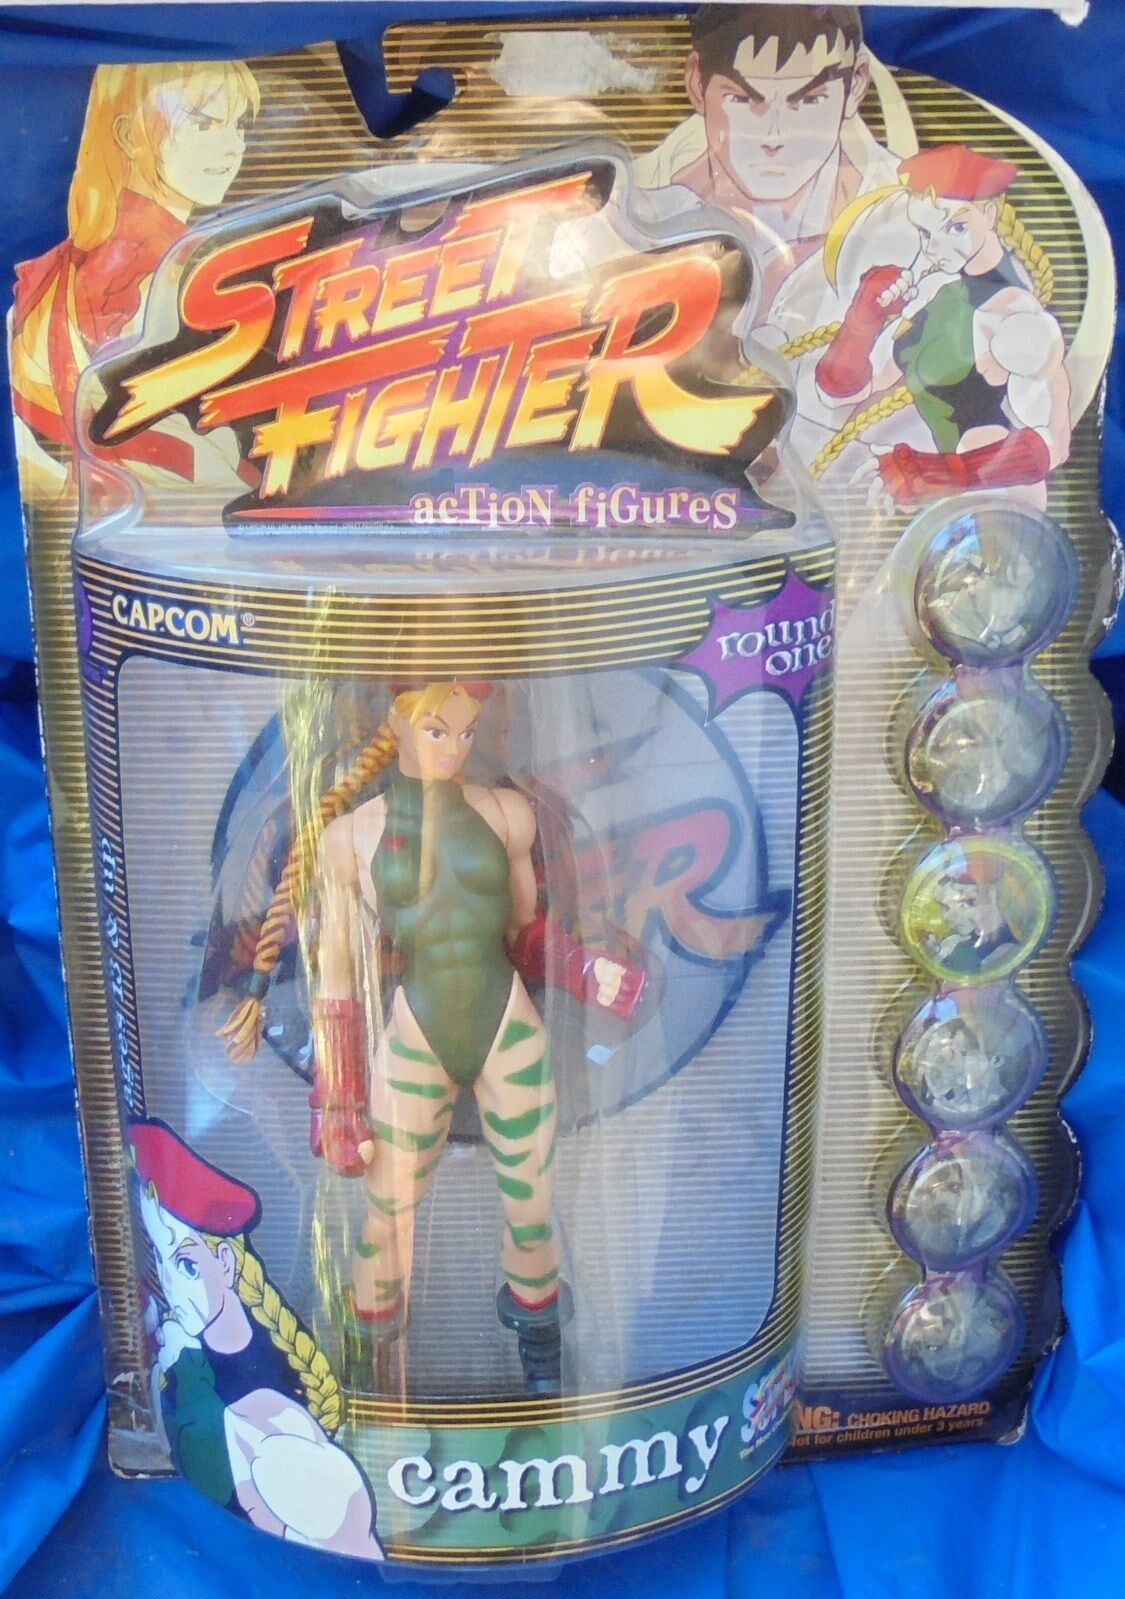 Street fighter cammy mip - action - figur resaurus grüne variante 1. runde capcom